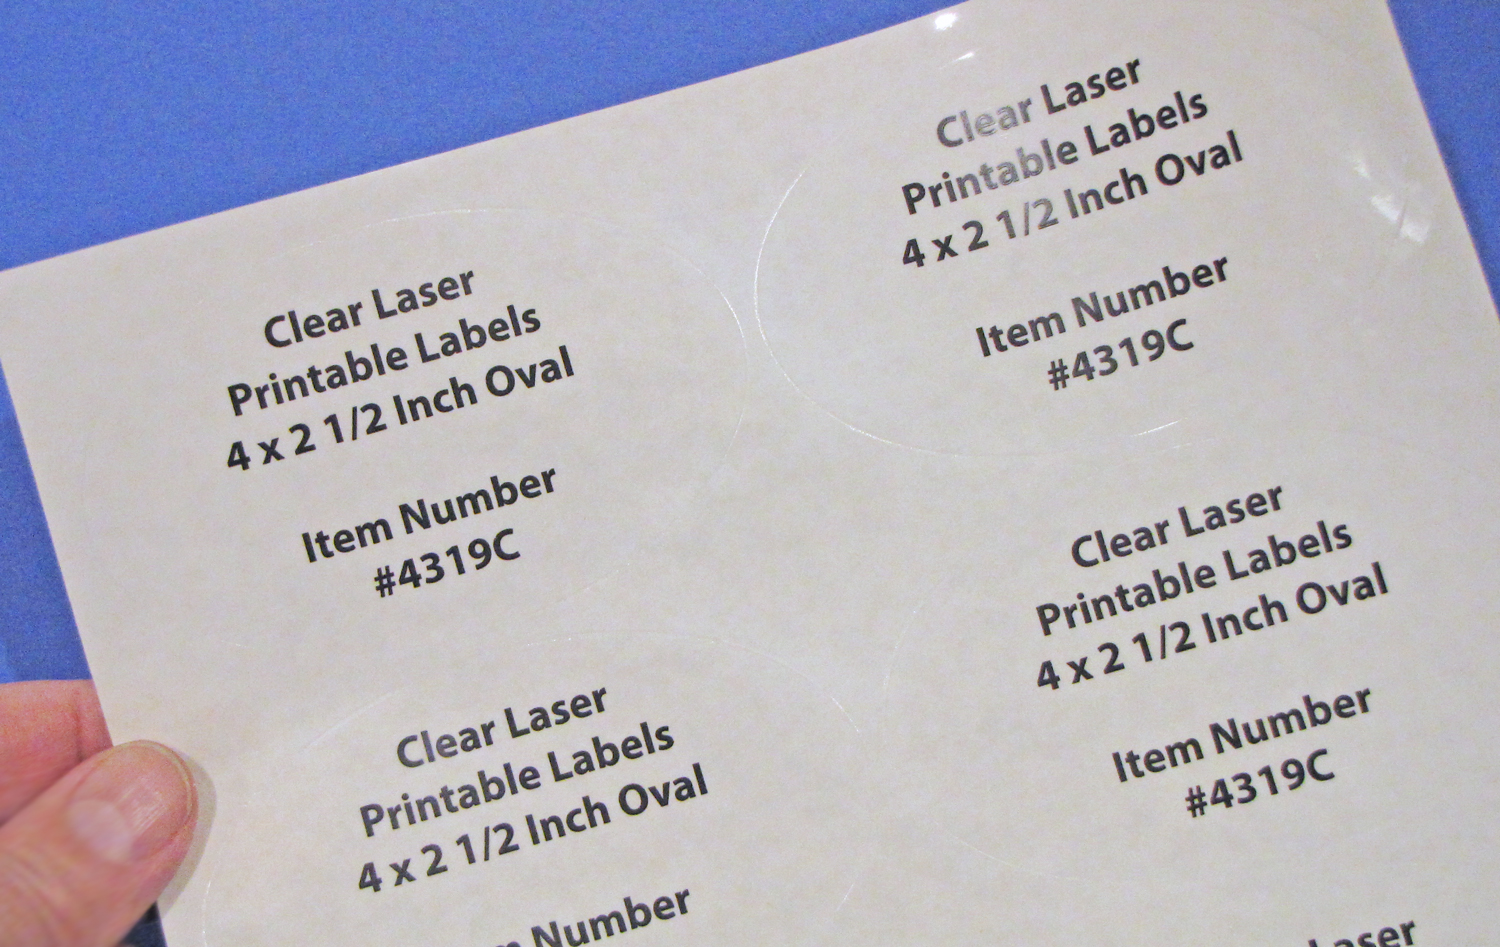 image regarding Clear Printable Labels called Oval 4 x 2 1/2 inch Crystal clear Shiny Laser Labels 50 Sheets 4319C